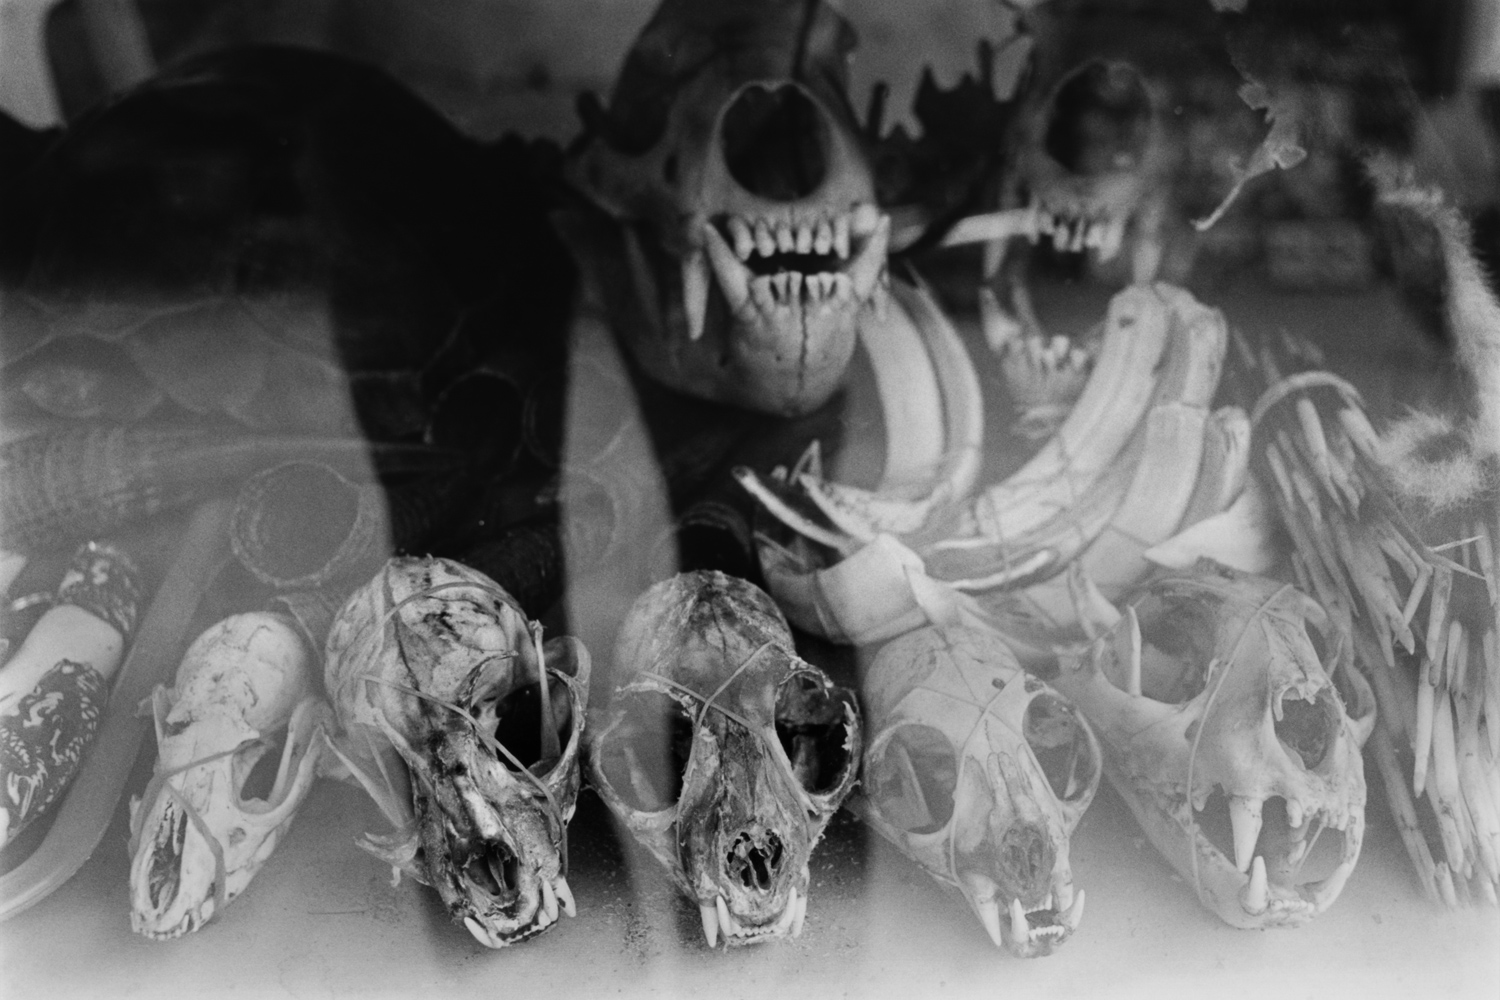 Thakhilek, Burma                                                                                             Tiger skulls, monkey skulls, deer horn and other wildlife products are for sale in a shop along the Thai-Burmese border. The town is a center for the sale and smuggling of poached animals, skins and parts.